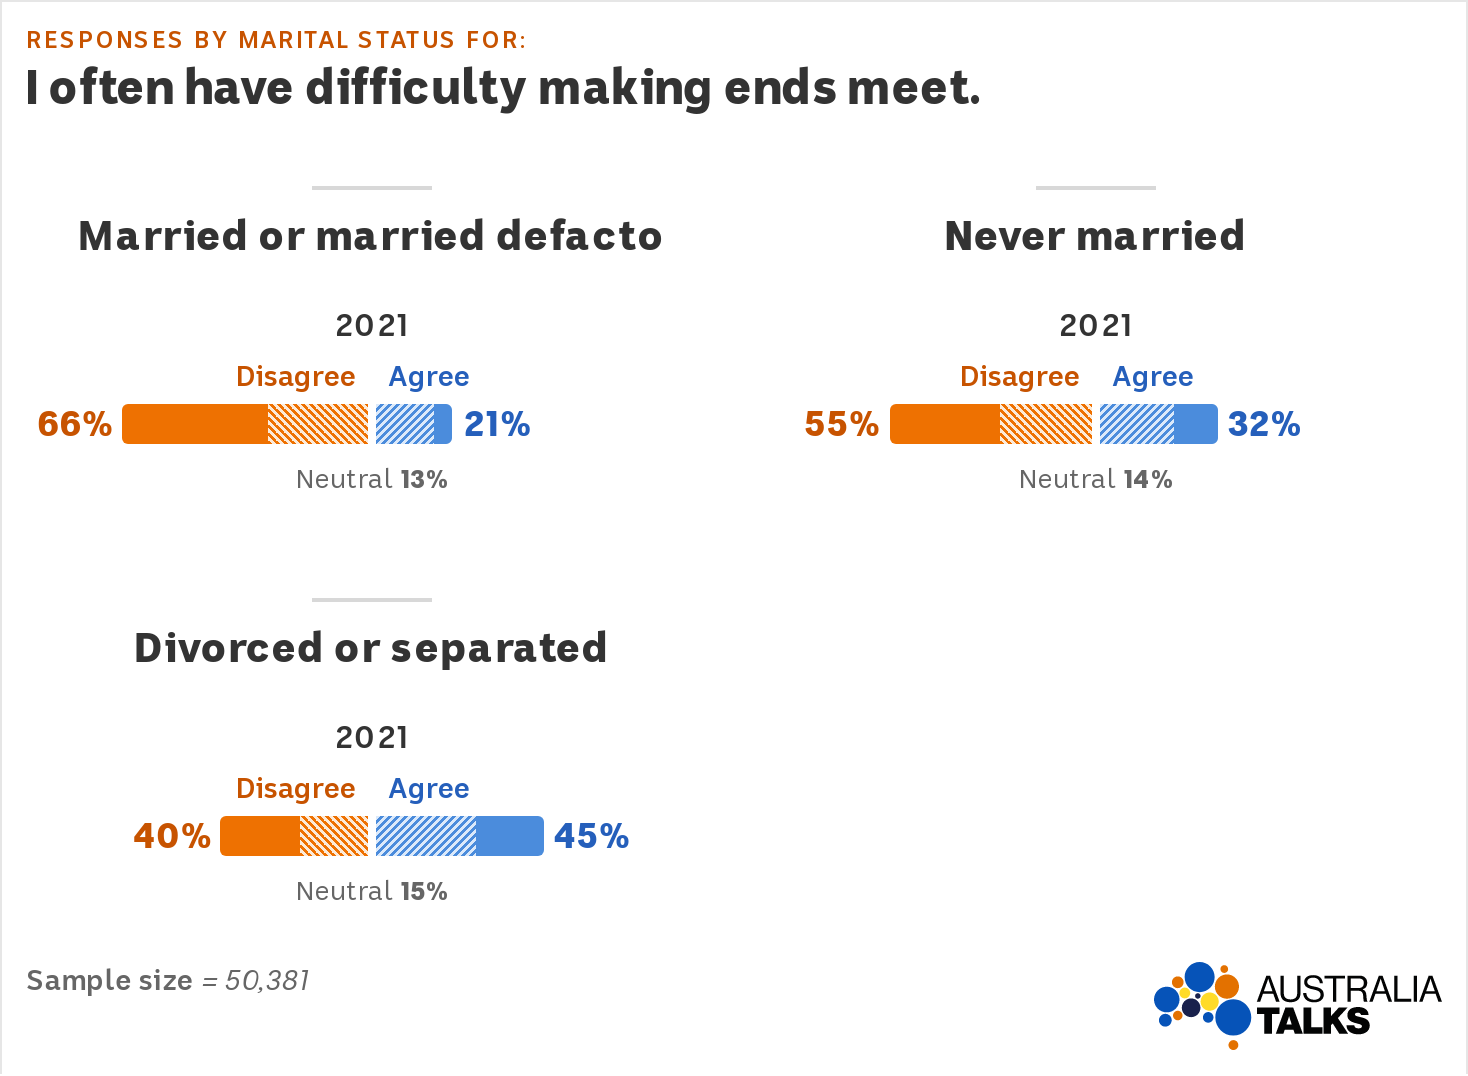 Graph showing divorced or separated Australians are more likely to agree they have difficulty making ends meet.